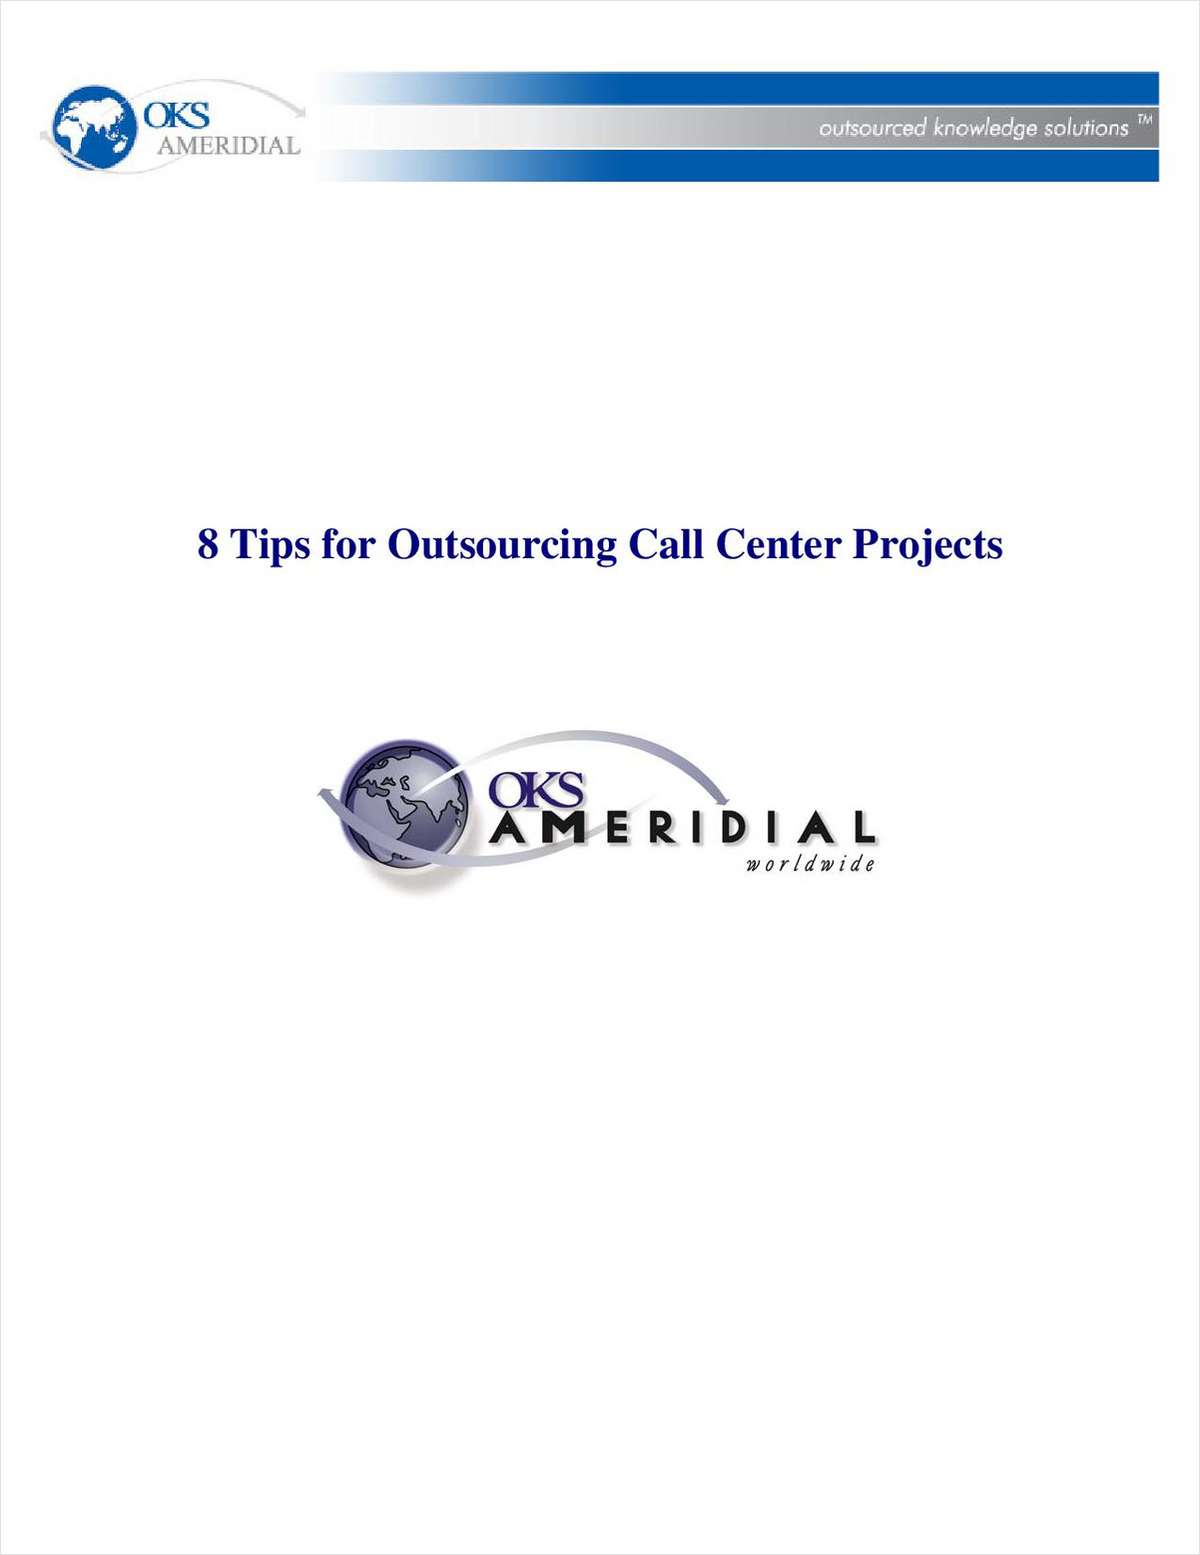 8 Tips for Outsourcing Call Center Projects